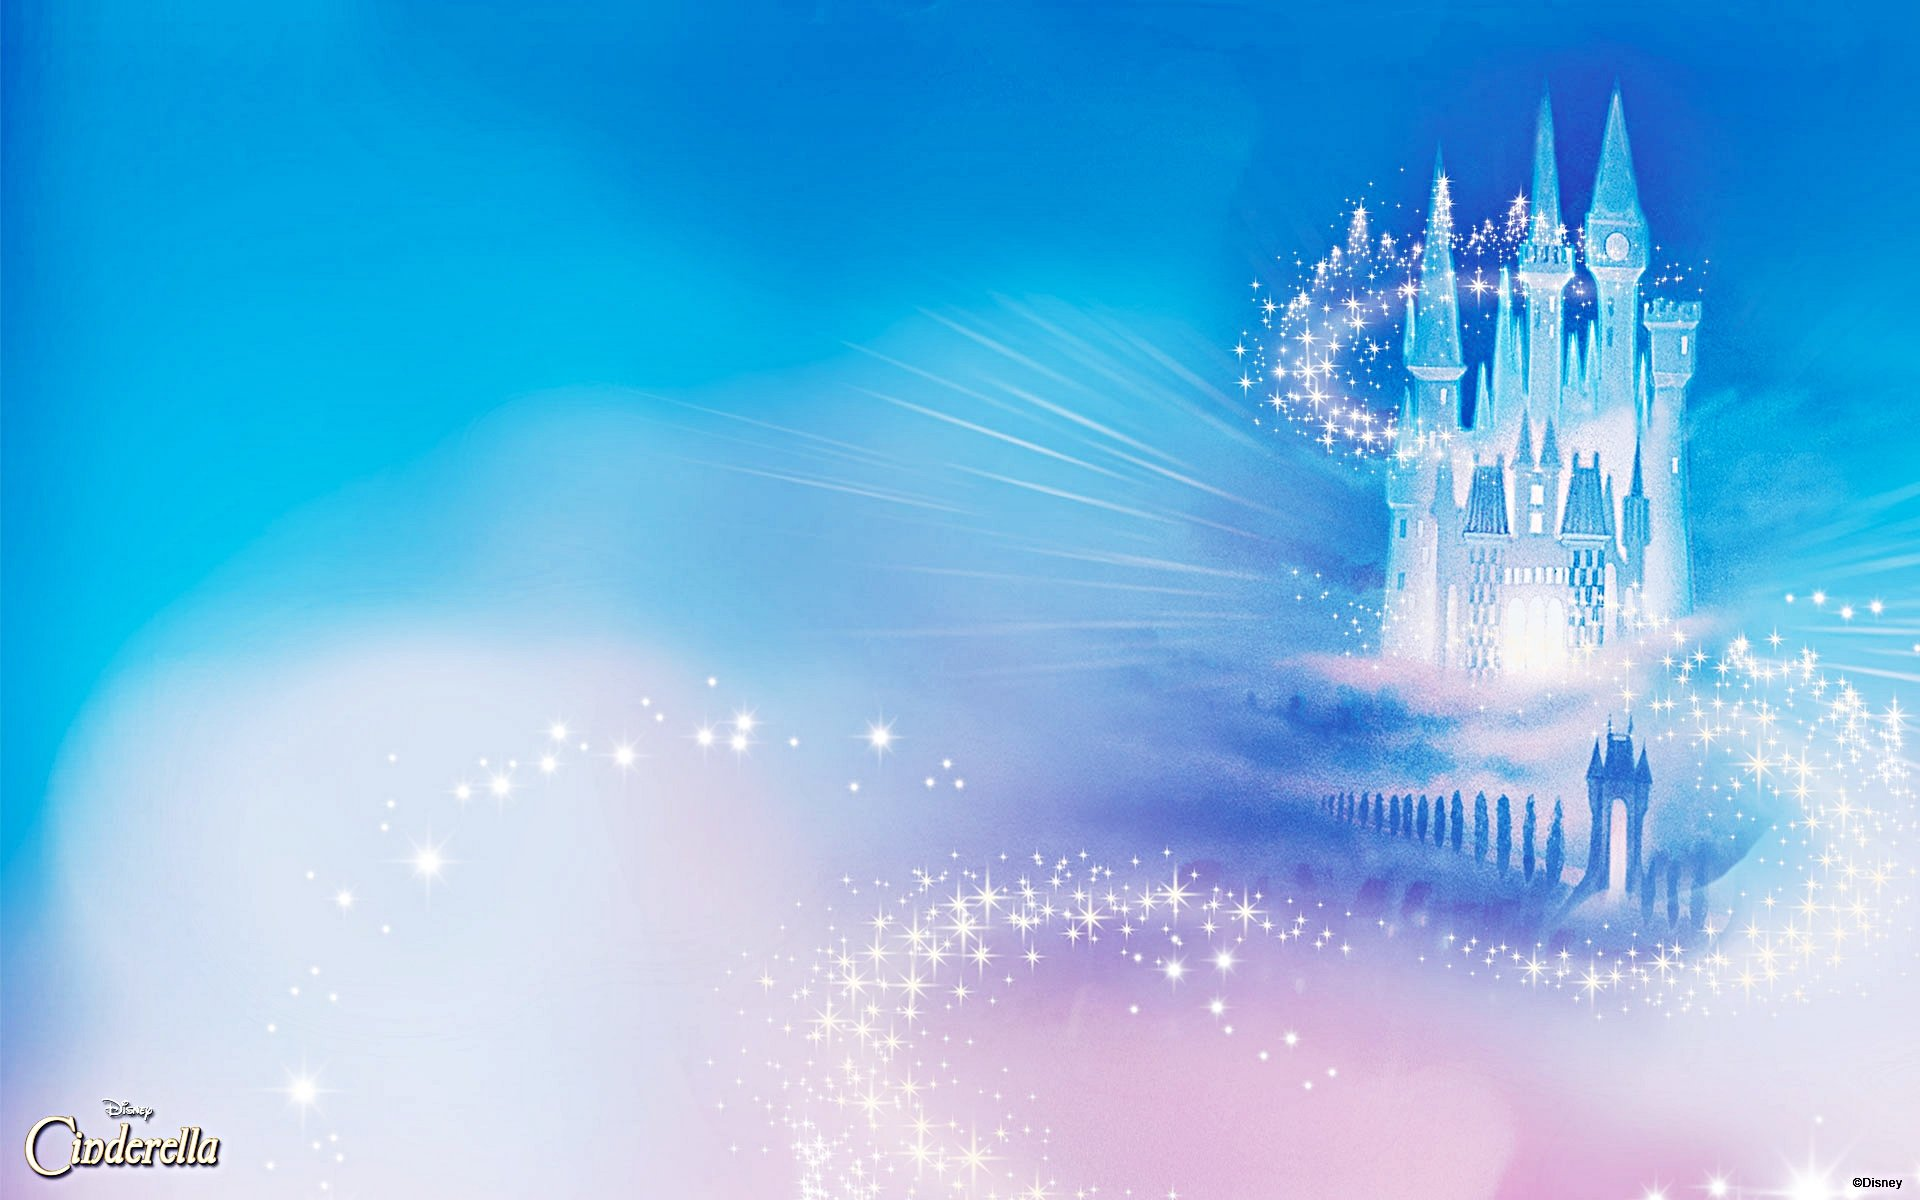 Disney com princess castle backgrounds disney princesses html code - Walt Disney Wallpapers Cinderella Walt Disney Characters Wallpaper